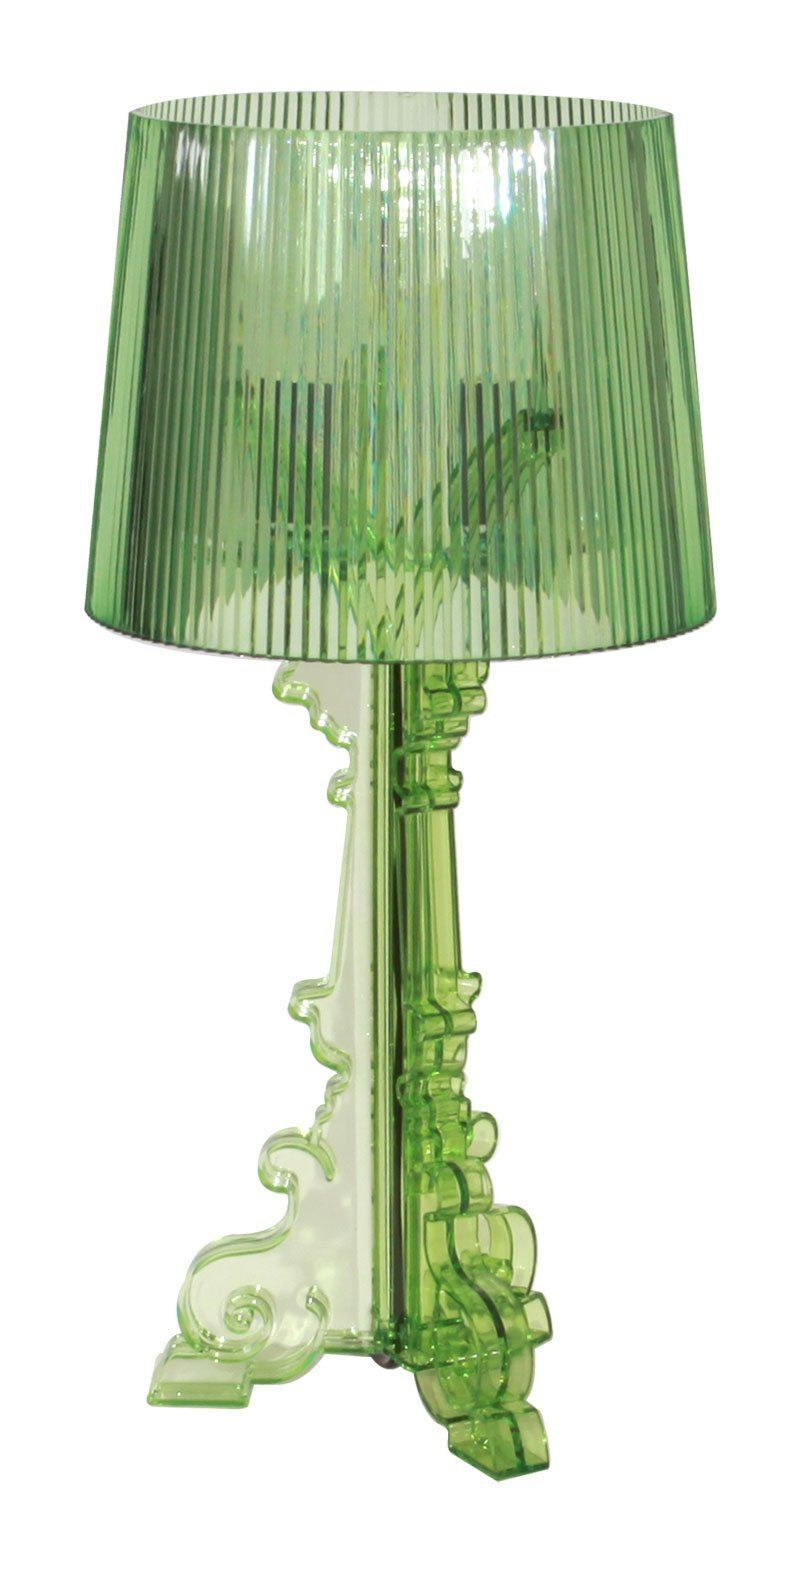 Kartell bourgie lamp replica for Kartell lampe replica